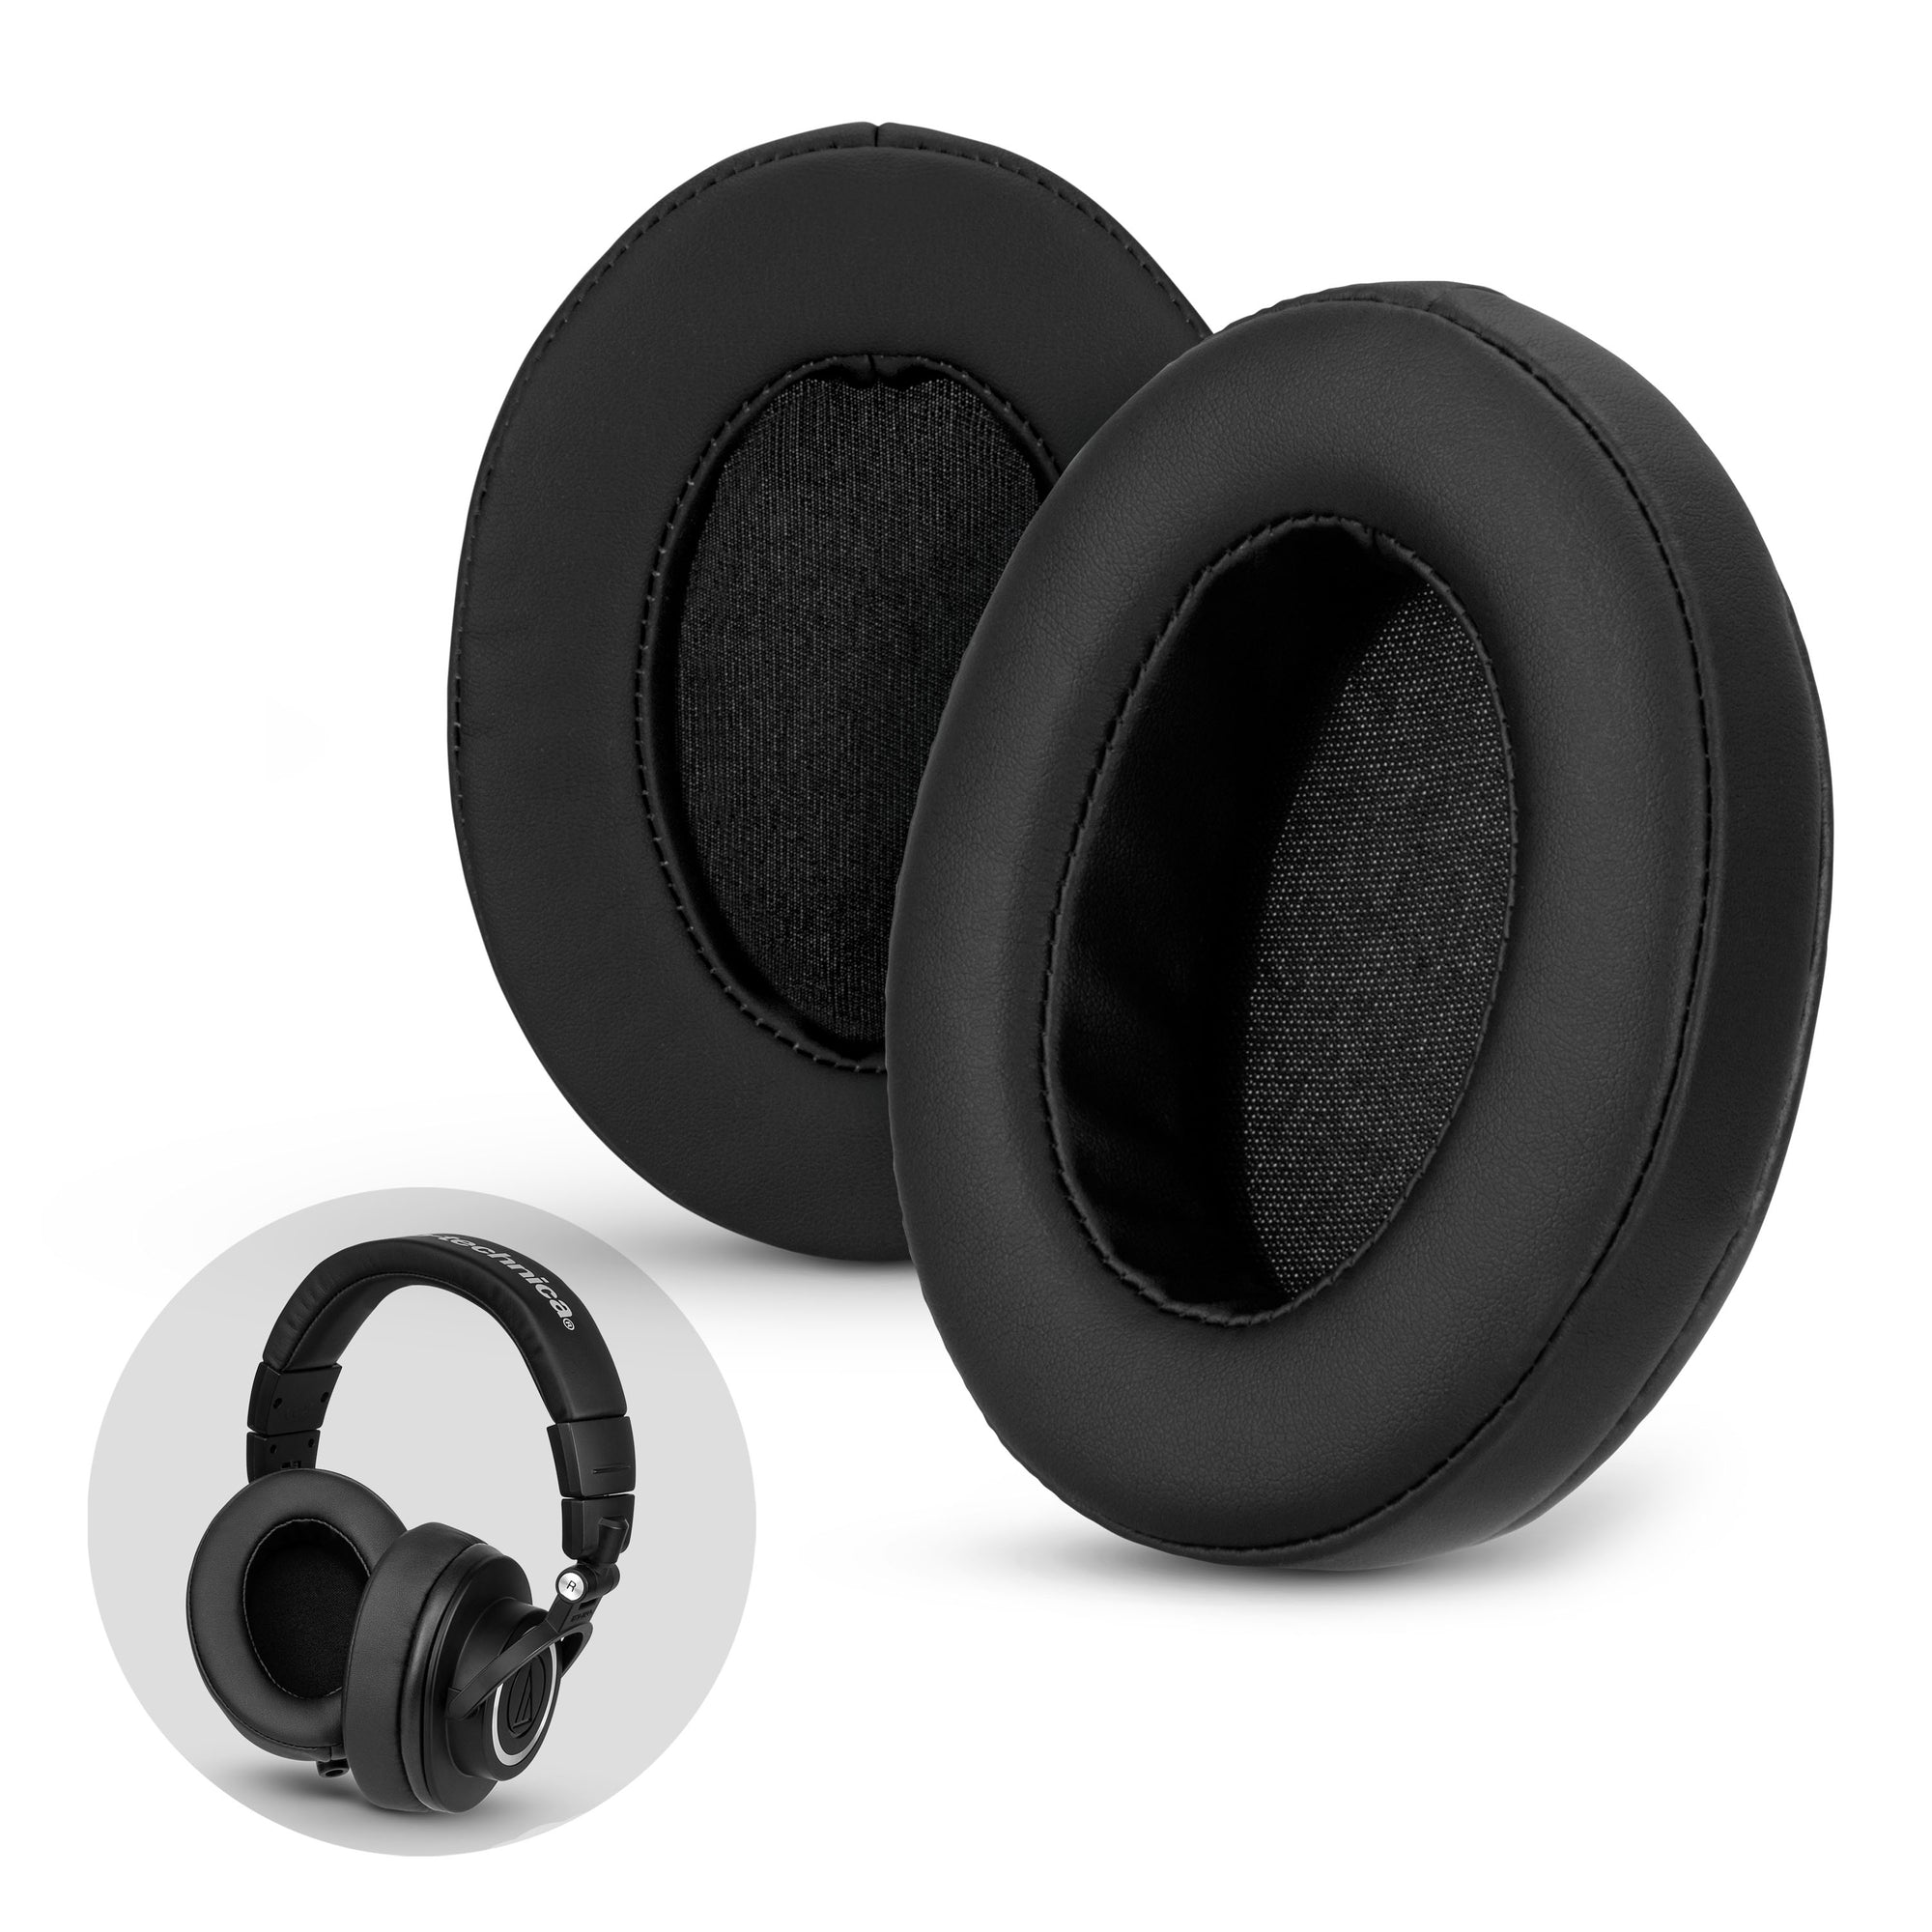 Oval Replacement Earpads - Suitable for many Headphones